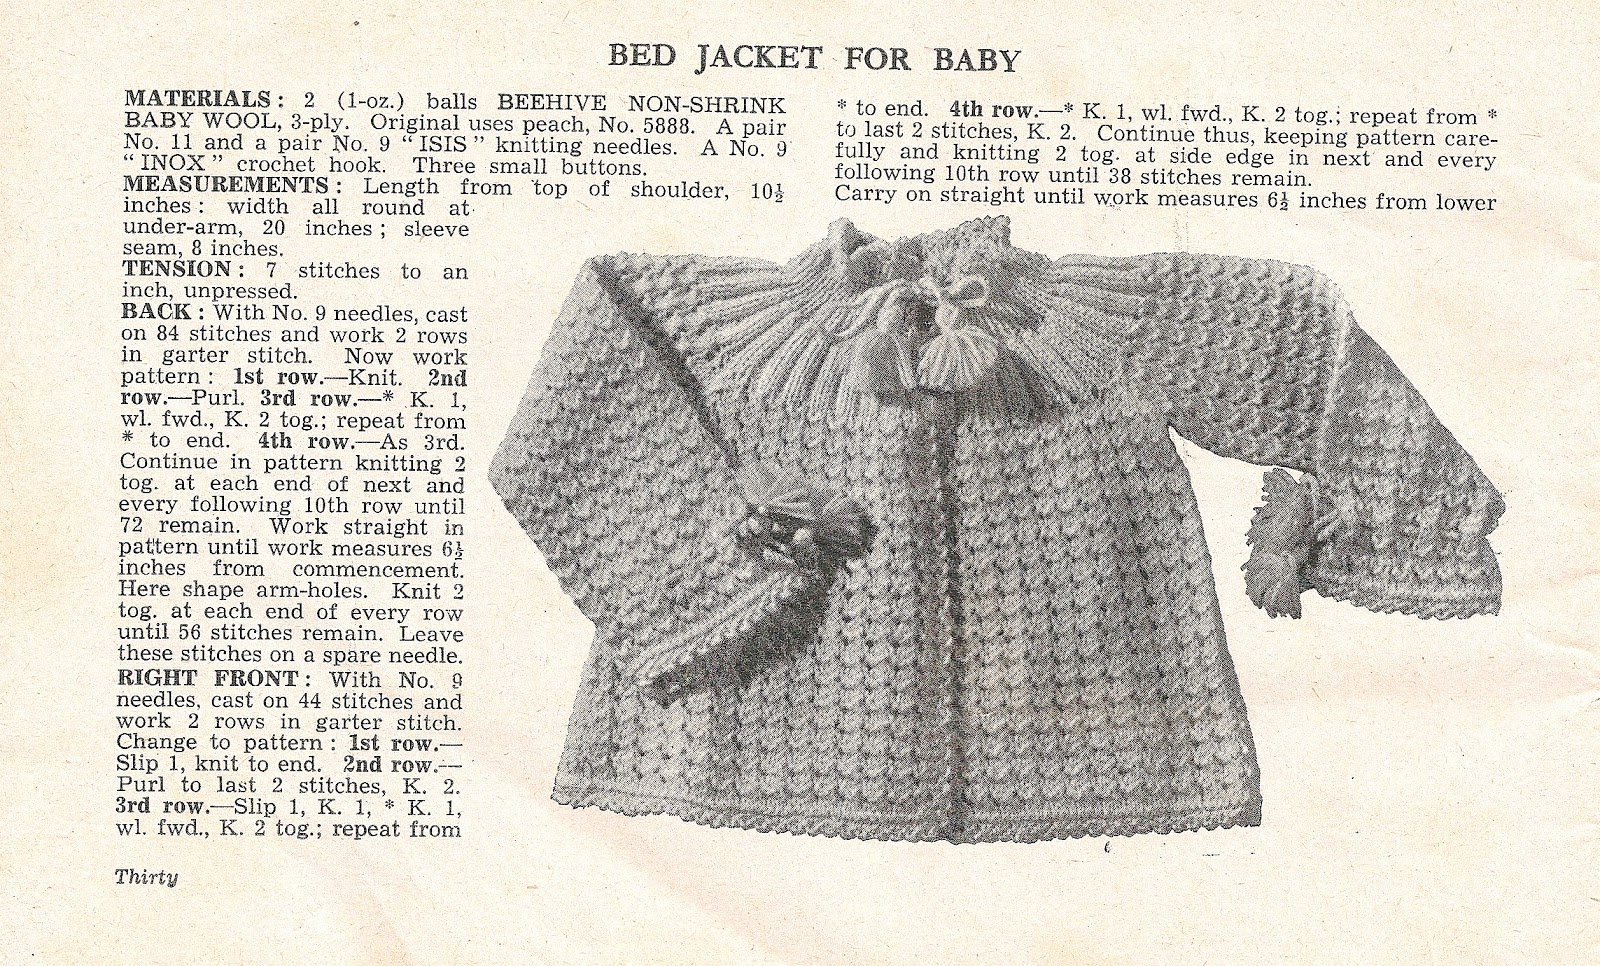 30 Designs A Collection of Vintage Knitted Bed Jacket Patterns